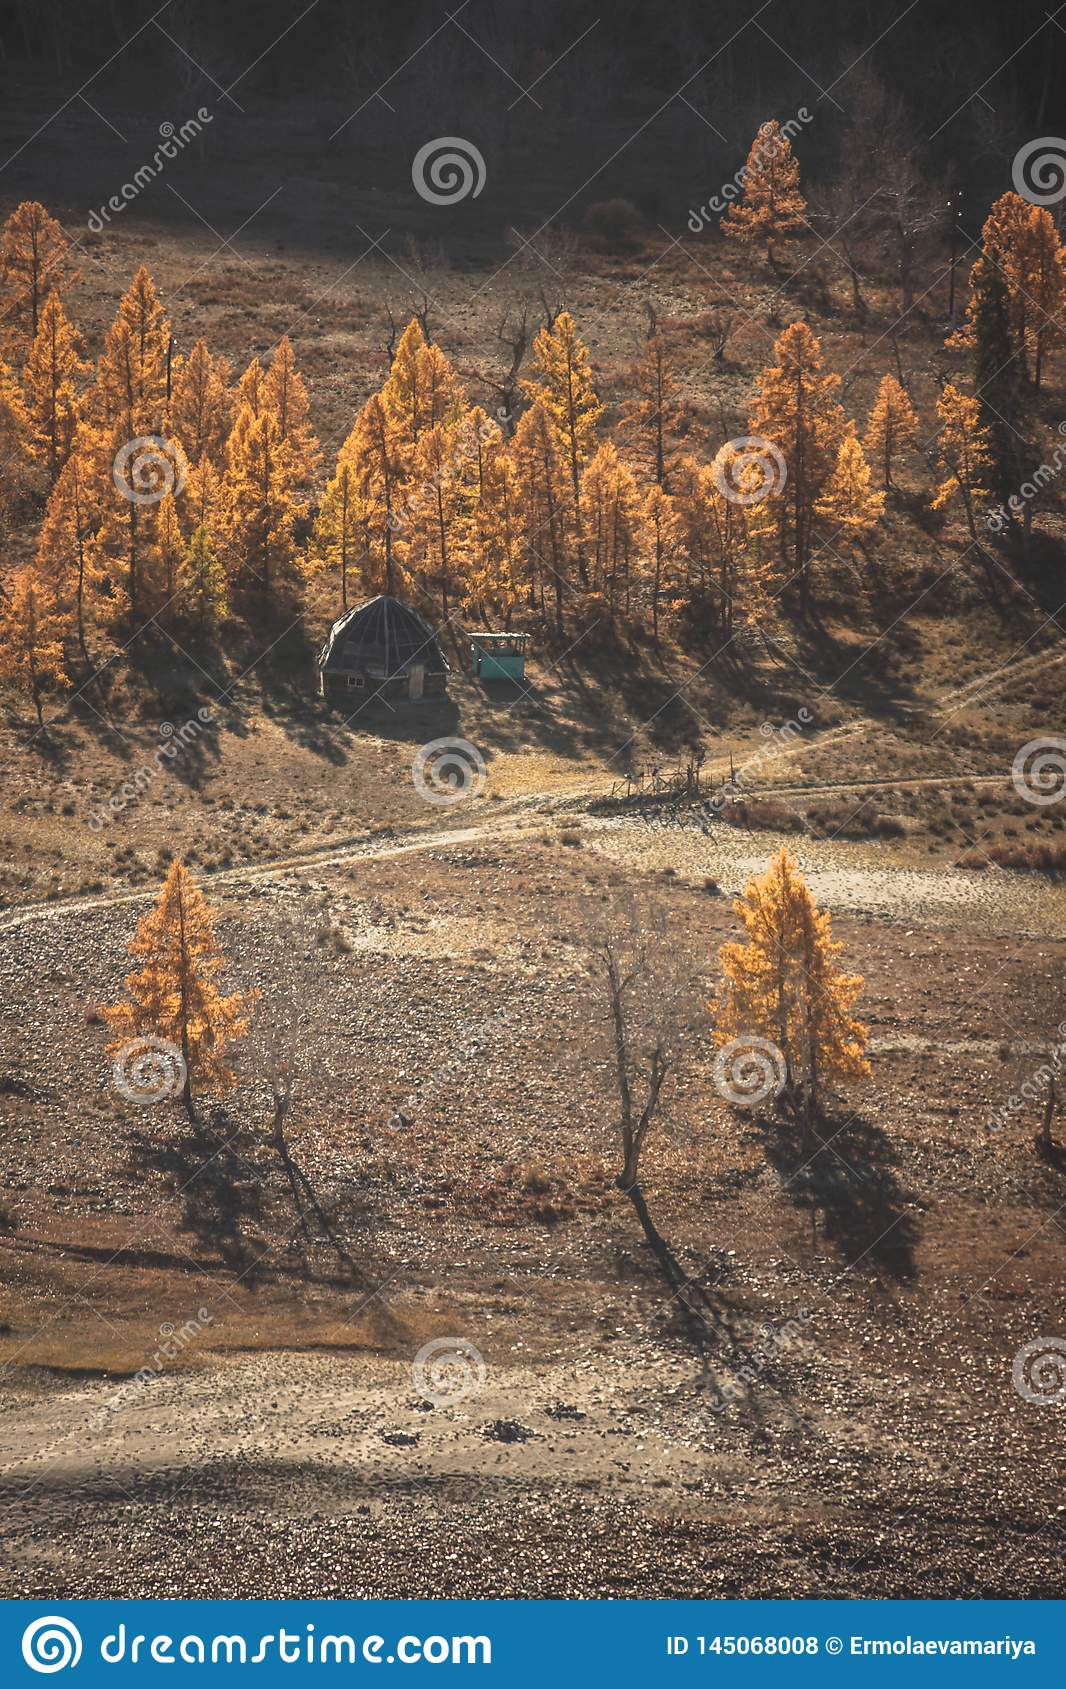 Mongolian Yurt And Ruined House Near The Large Mountain Autumn